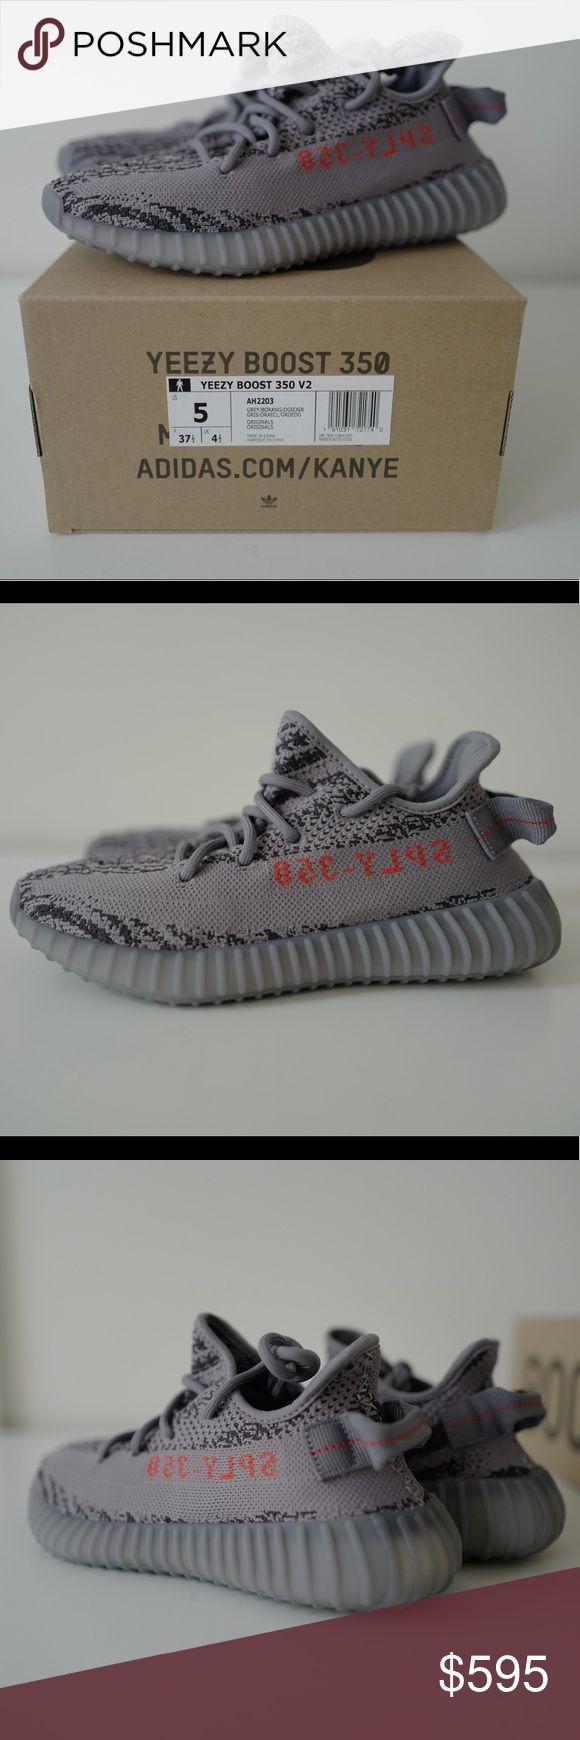 NWT Adidas Yeezy Boost Beluga 2.0 Adidas Yeezy Boost Beluga 2.0 Release Date: 11/25/2017 100% Authentic. Size 5 in Mens.  Usually a 6-6.5 and it fits me just right.   More photos can be provided if necessary. Willing to sell at a lower price through PayPal ($545). Let me know if you have any questions! adidas Shoes Sneakers